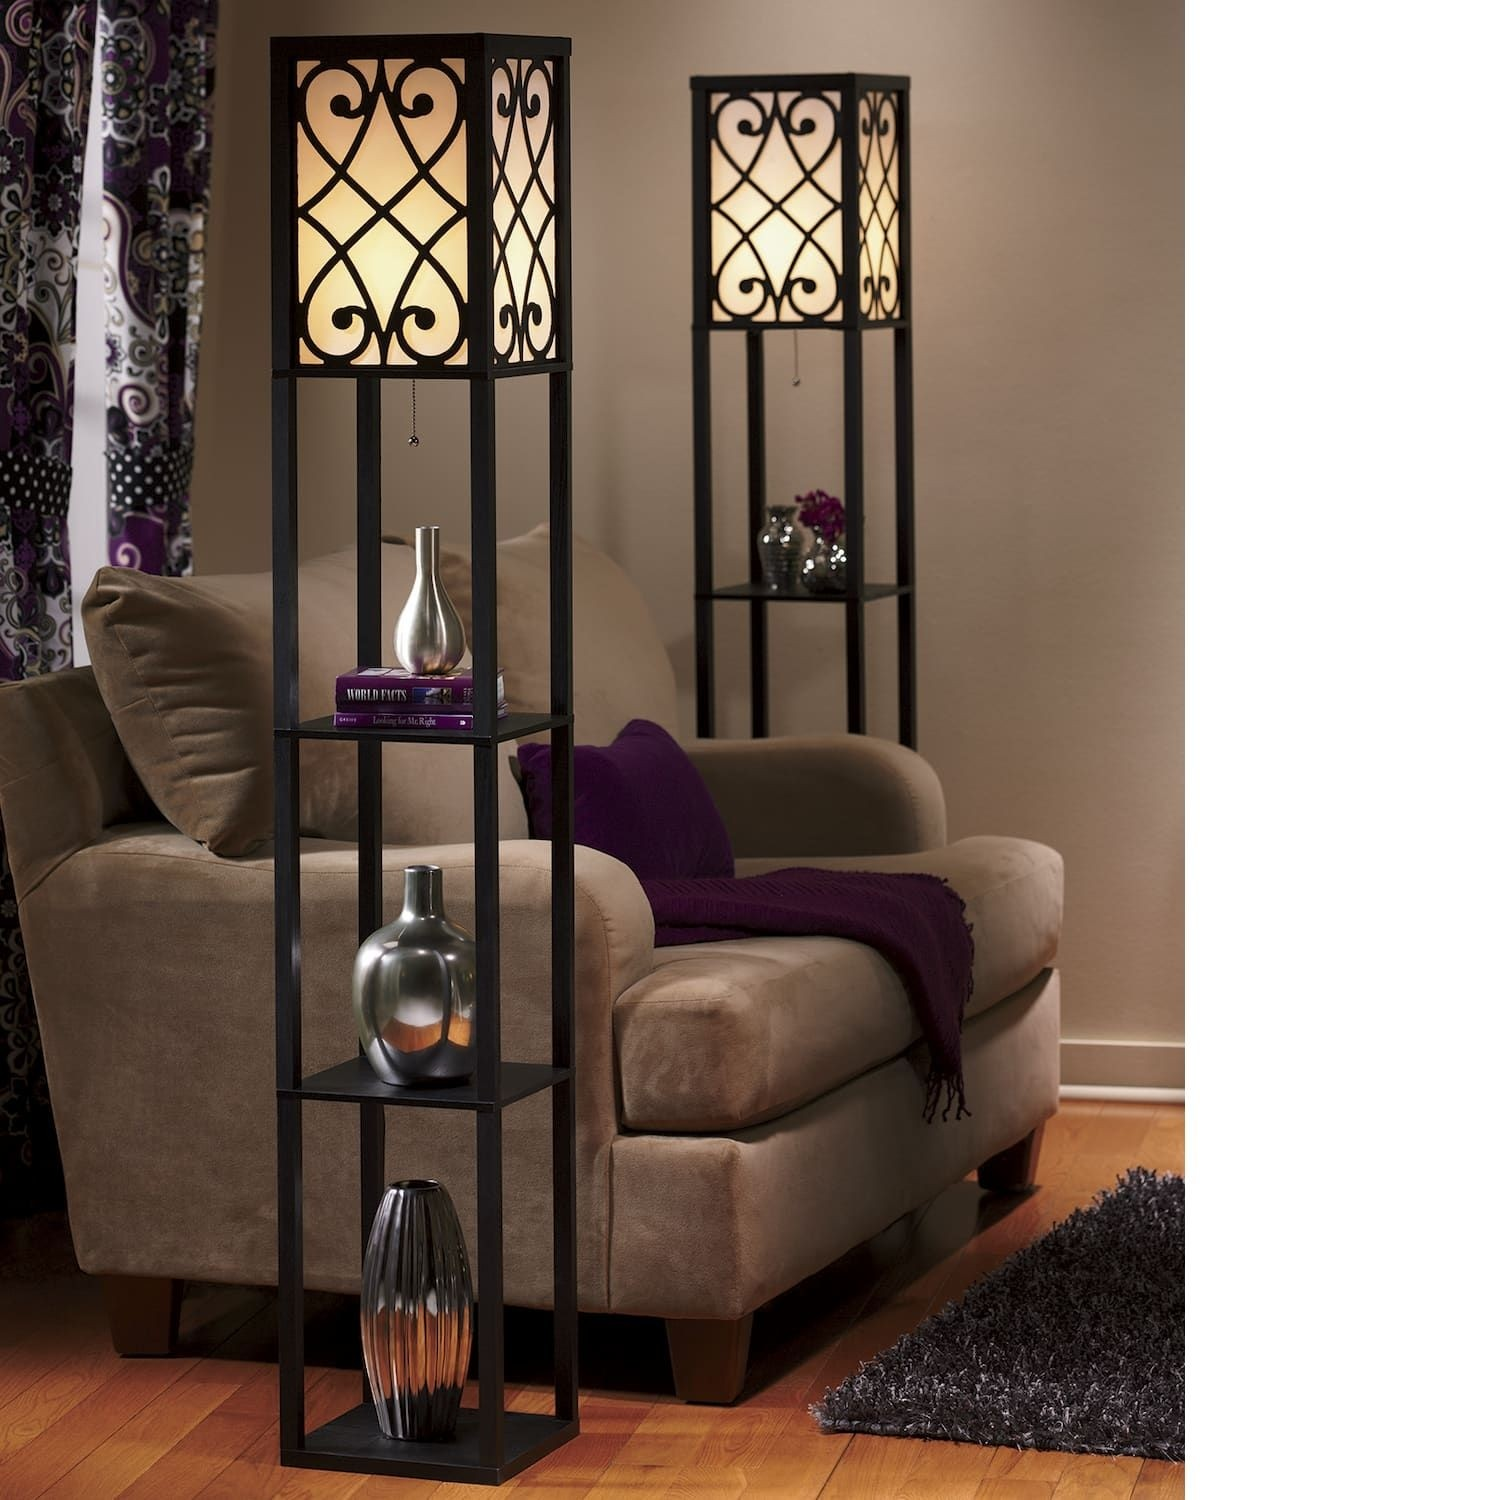 Delightful Standing Lamp With Shelves